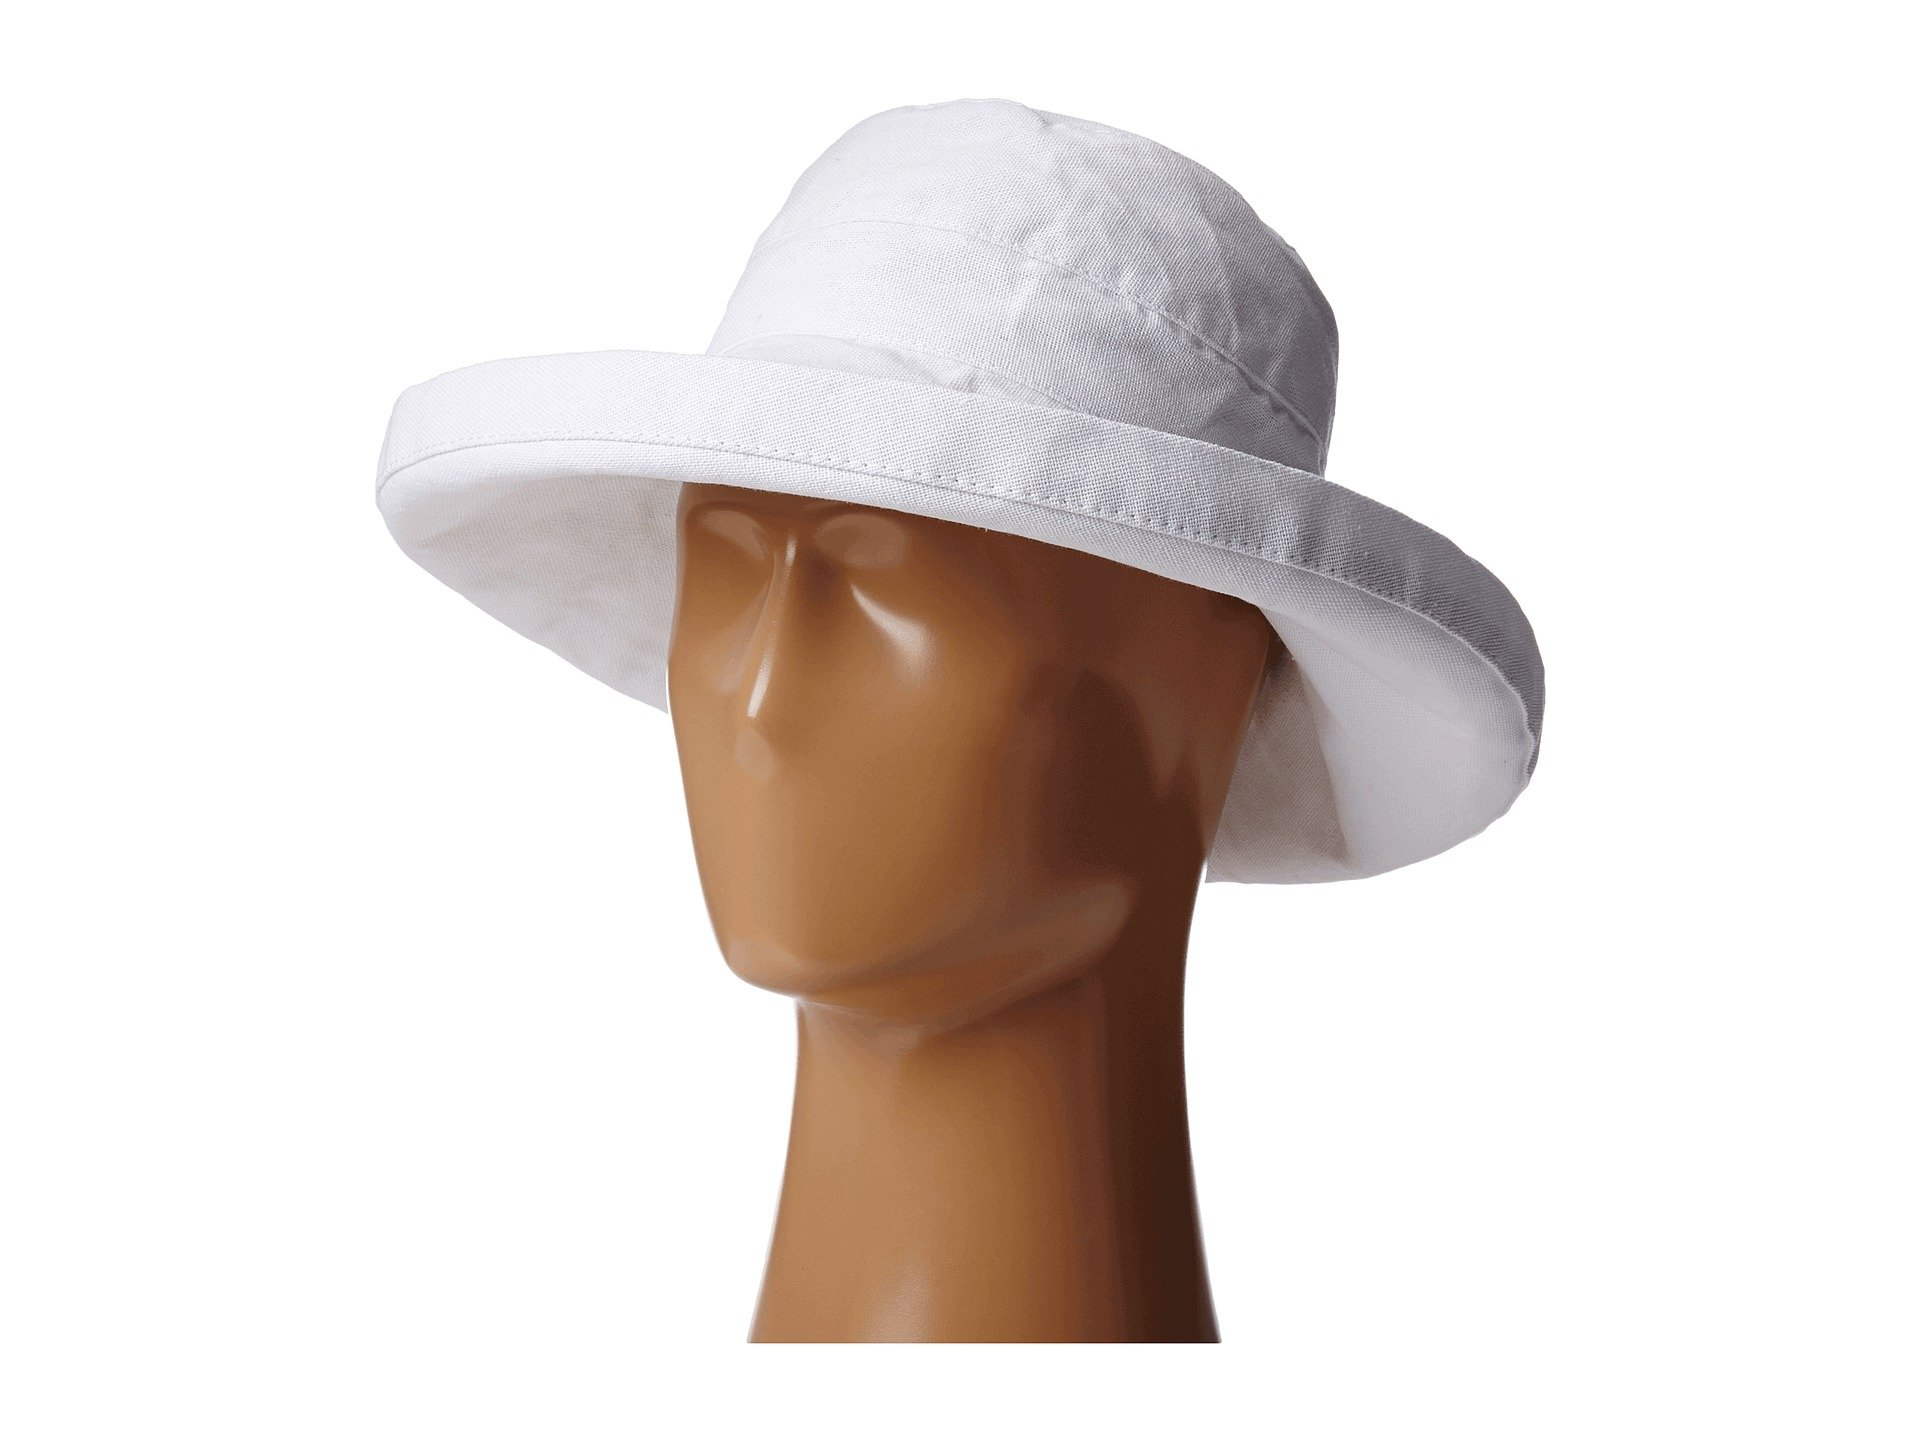 Scala Women's Cotton Hat with Inner Drawstring and Upf 50+ Rating,White,One Size by SCALA